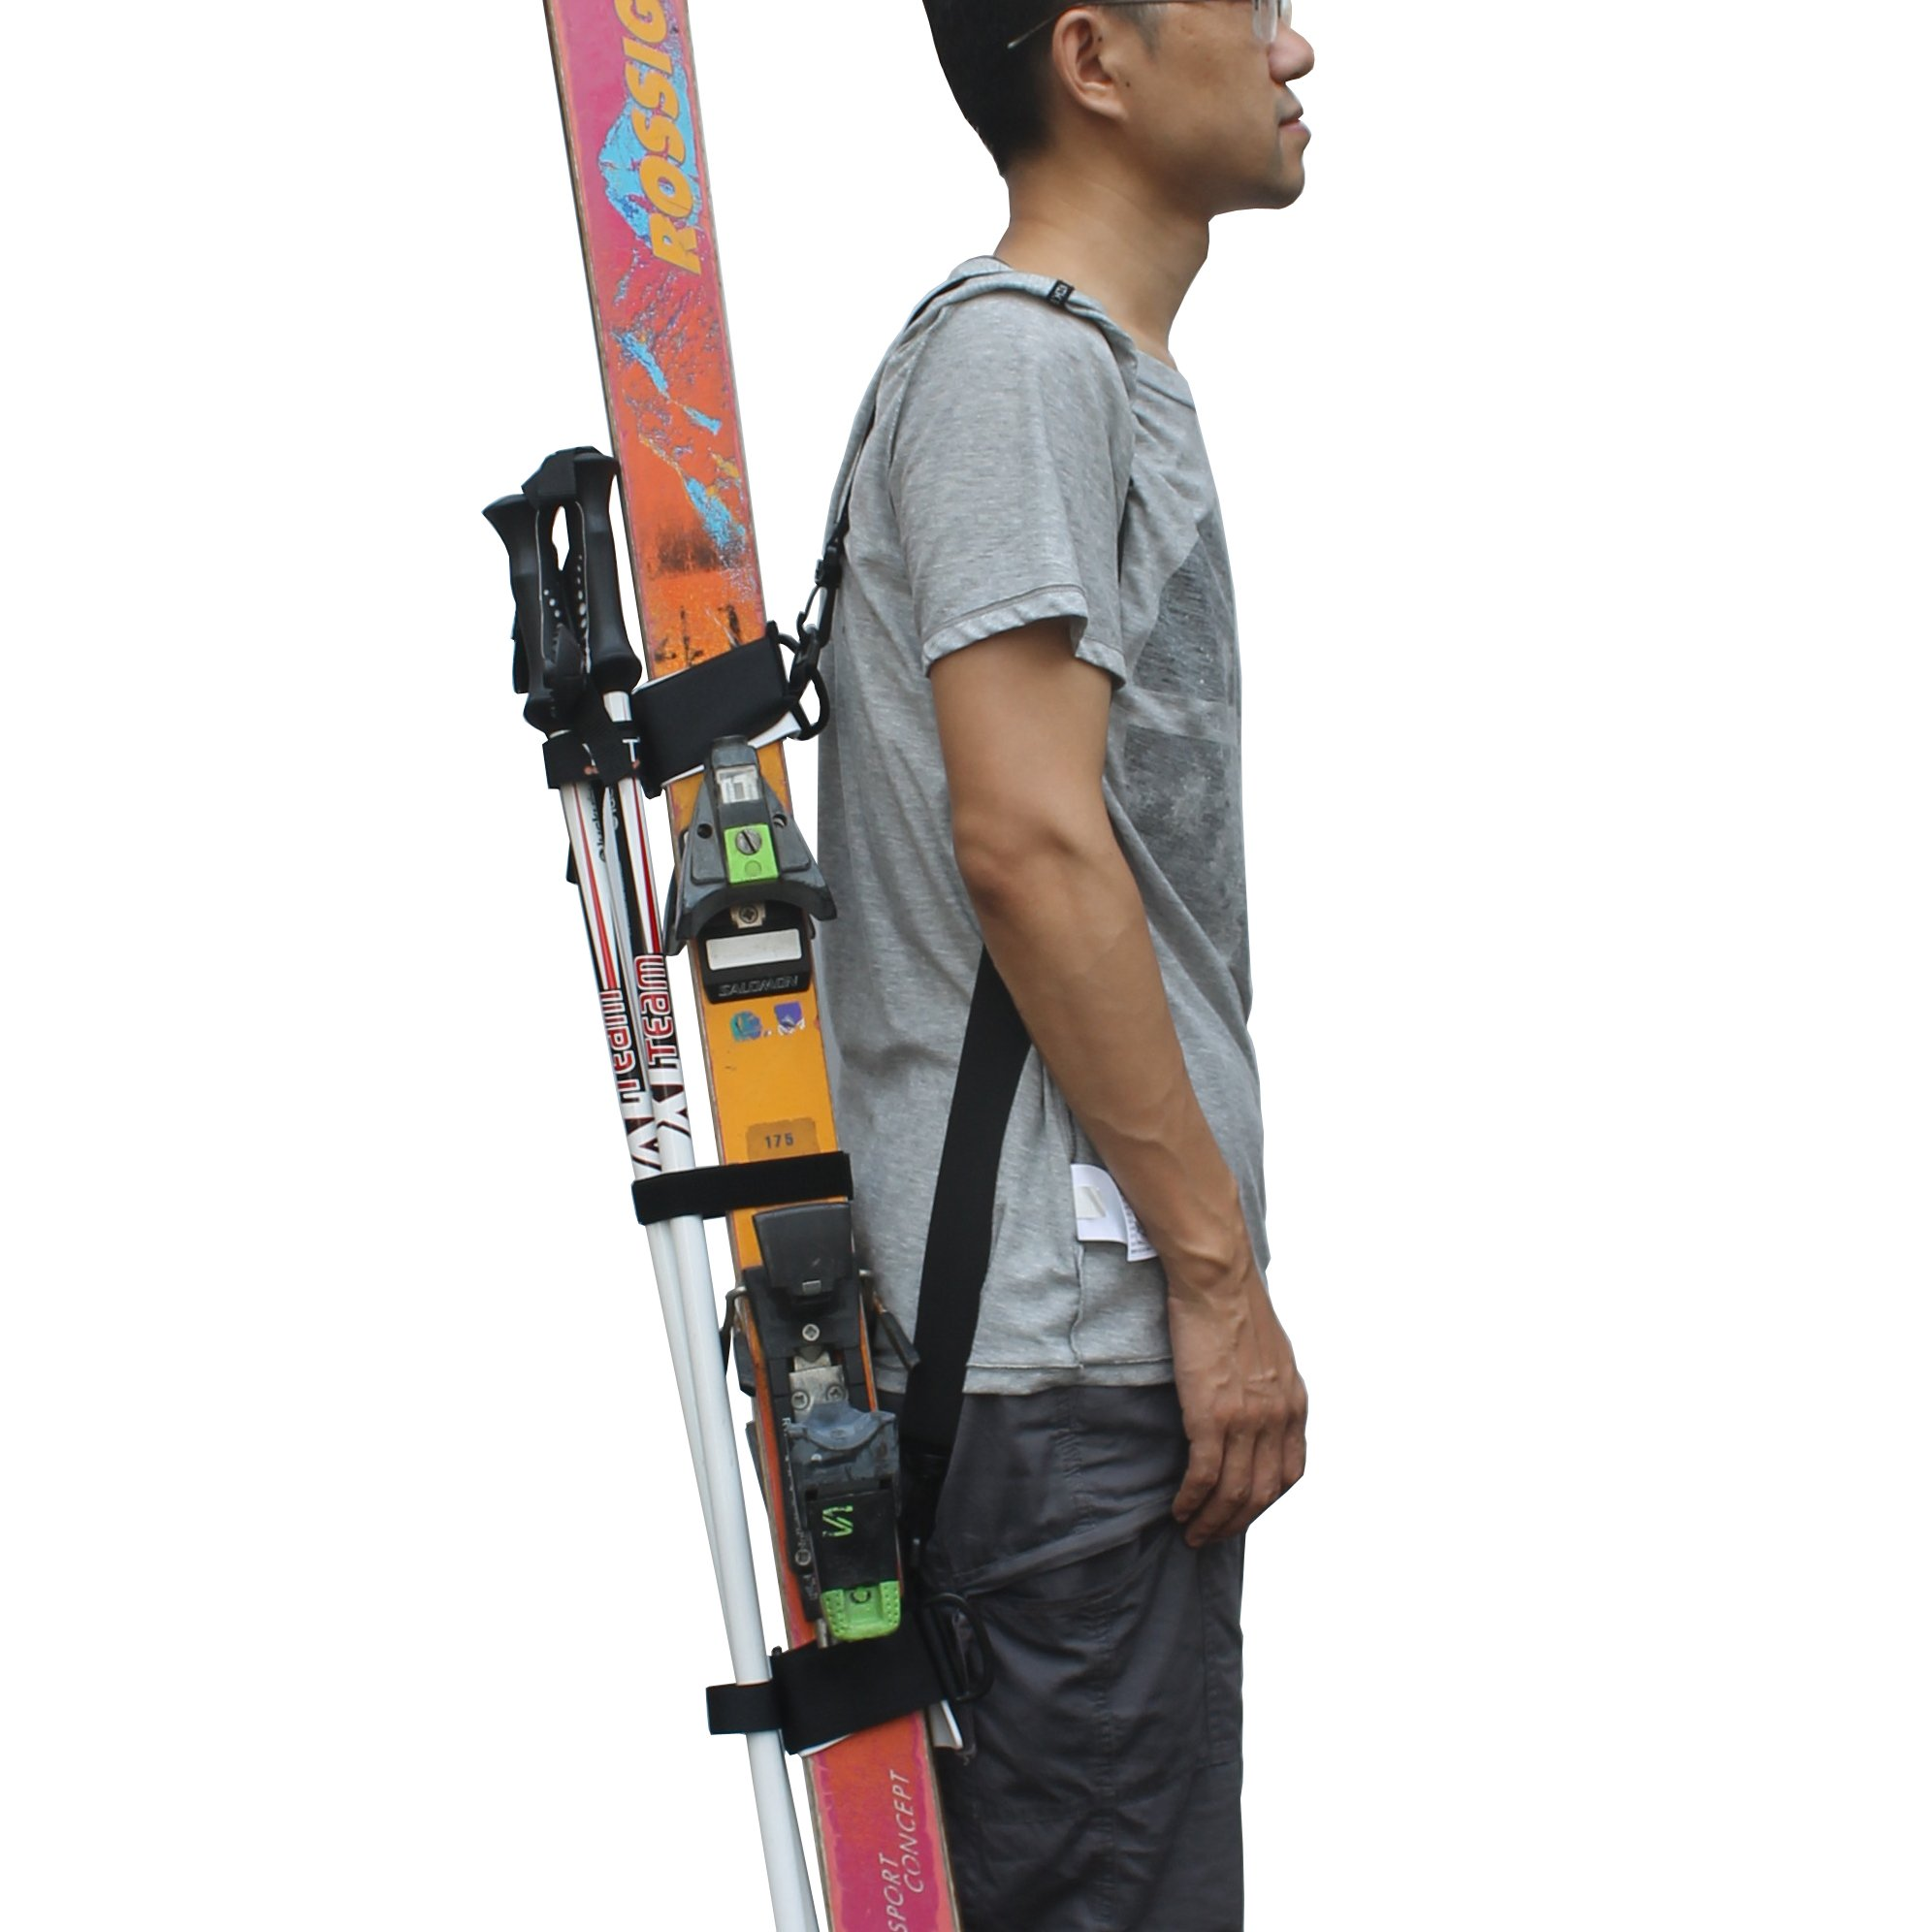 YYST ONE Picece Adjustable Ski Shoulder Carrier Ski Shoulder Lash Handle Straps The Shoulder Strap is Also a Boot Strap